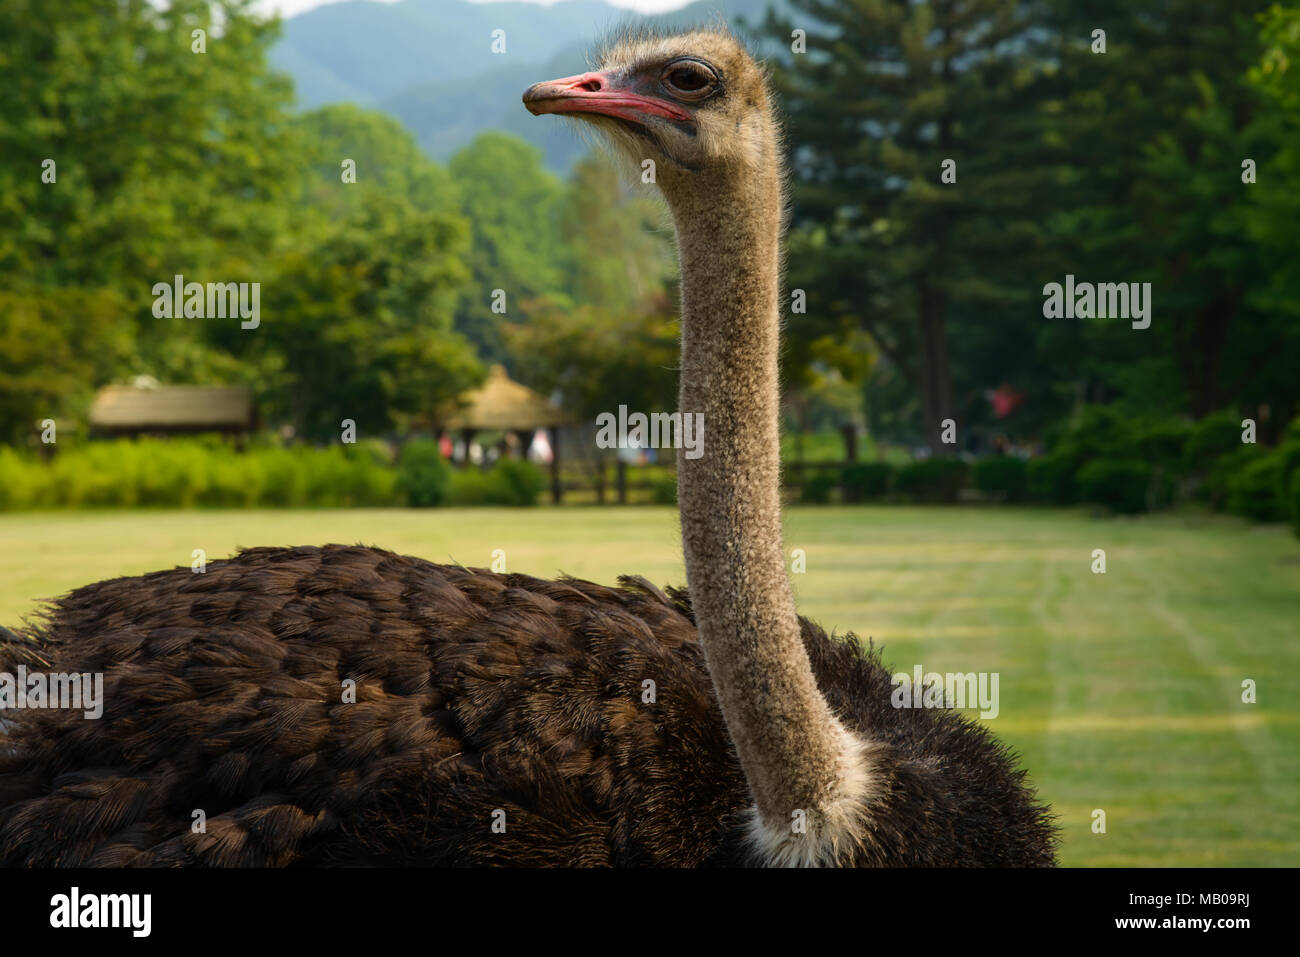 An Ostrich in the park - Stock Image